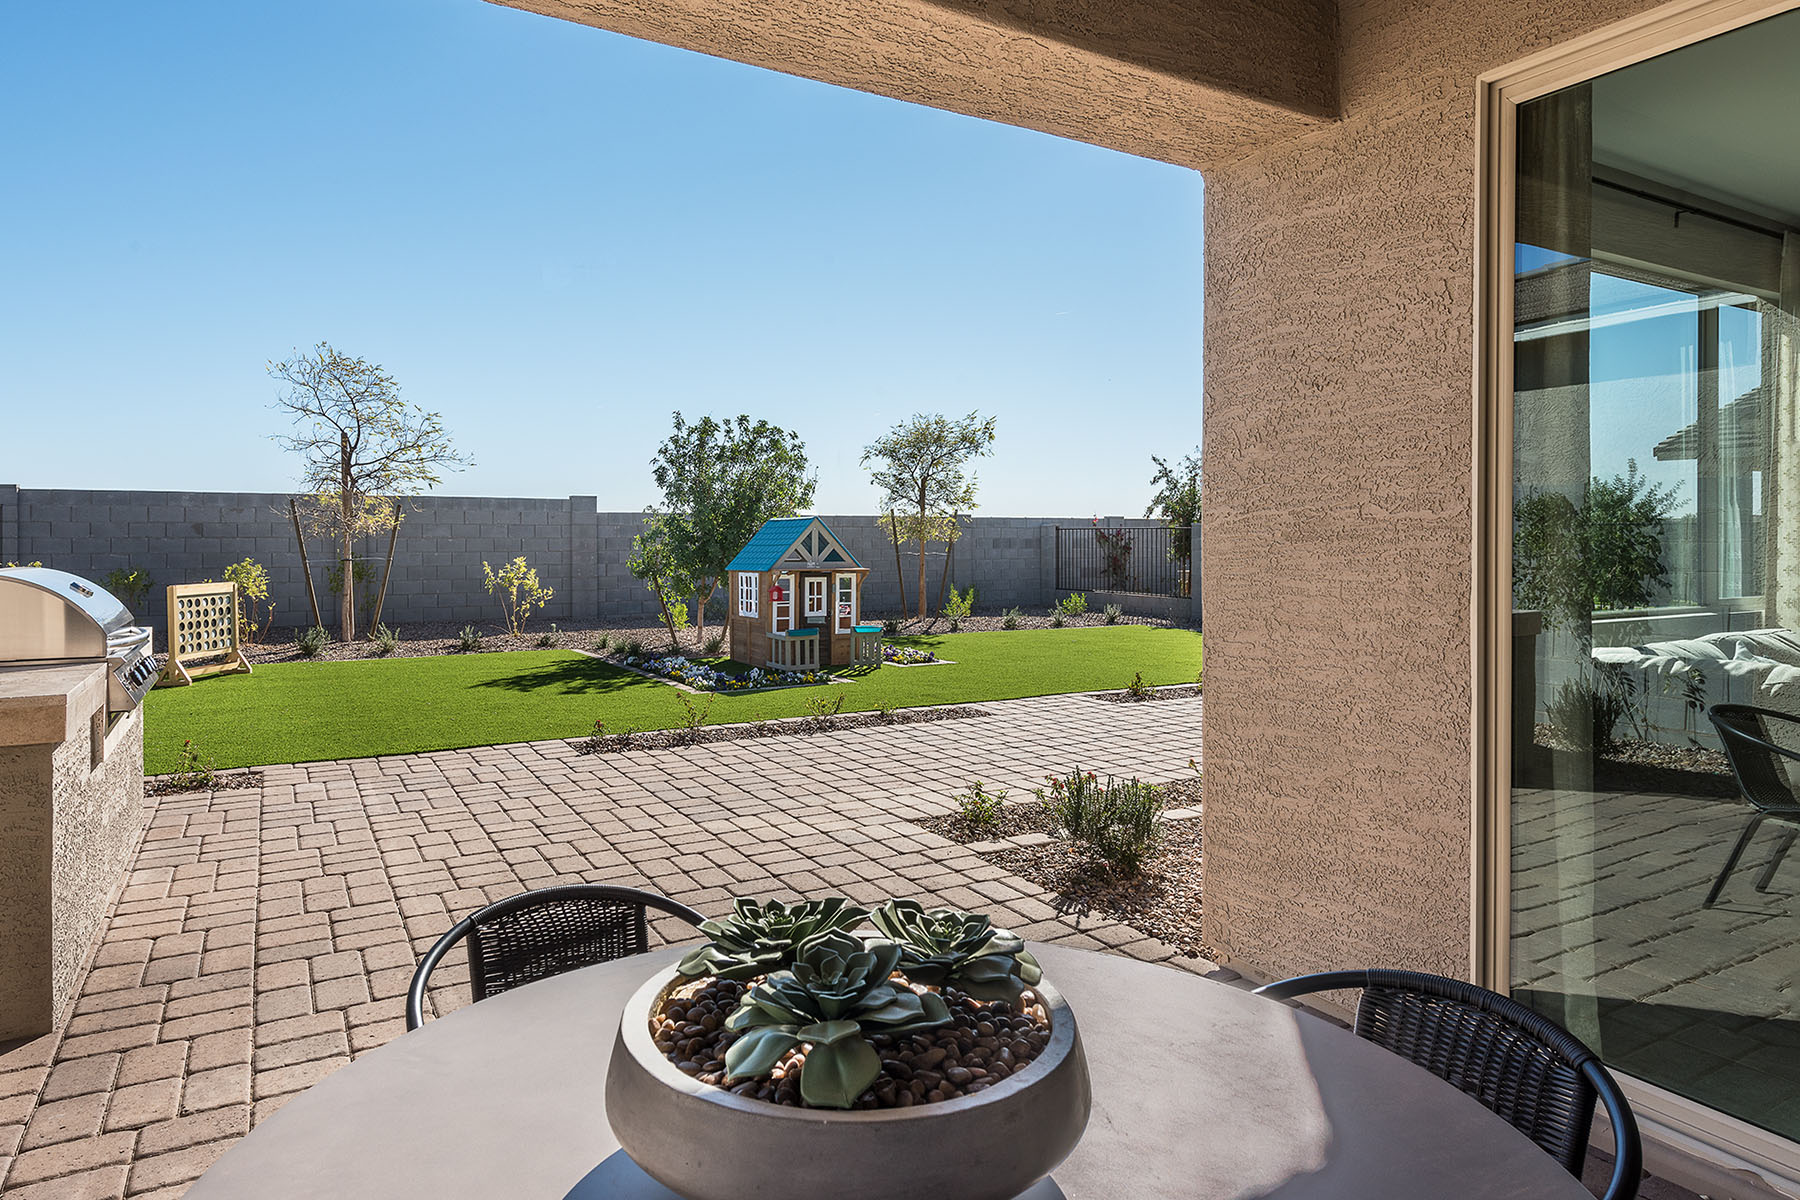 Aries Plan Patio at Azure Canyon in Litchfield Park Arizona by Mattamy Homes